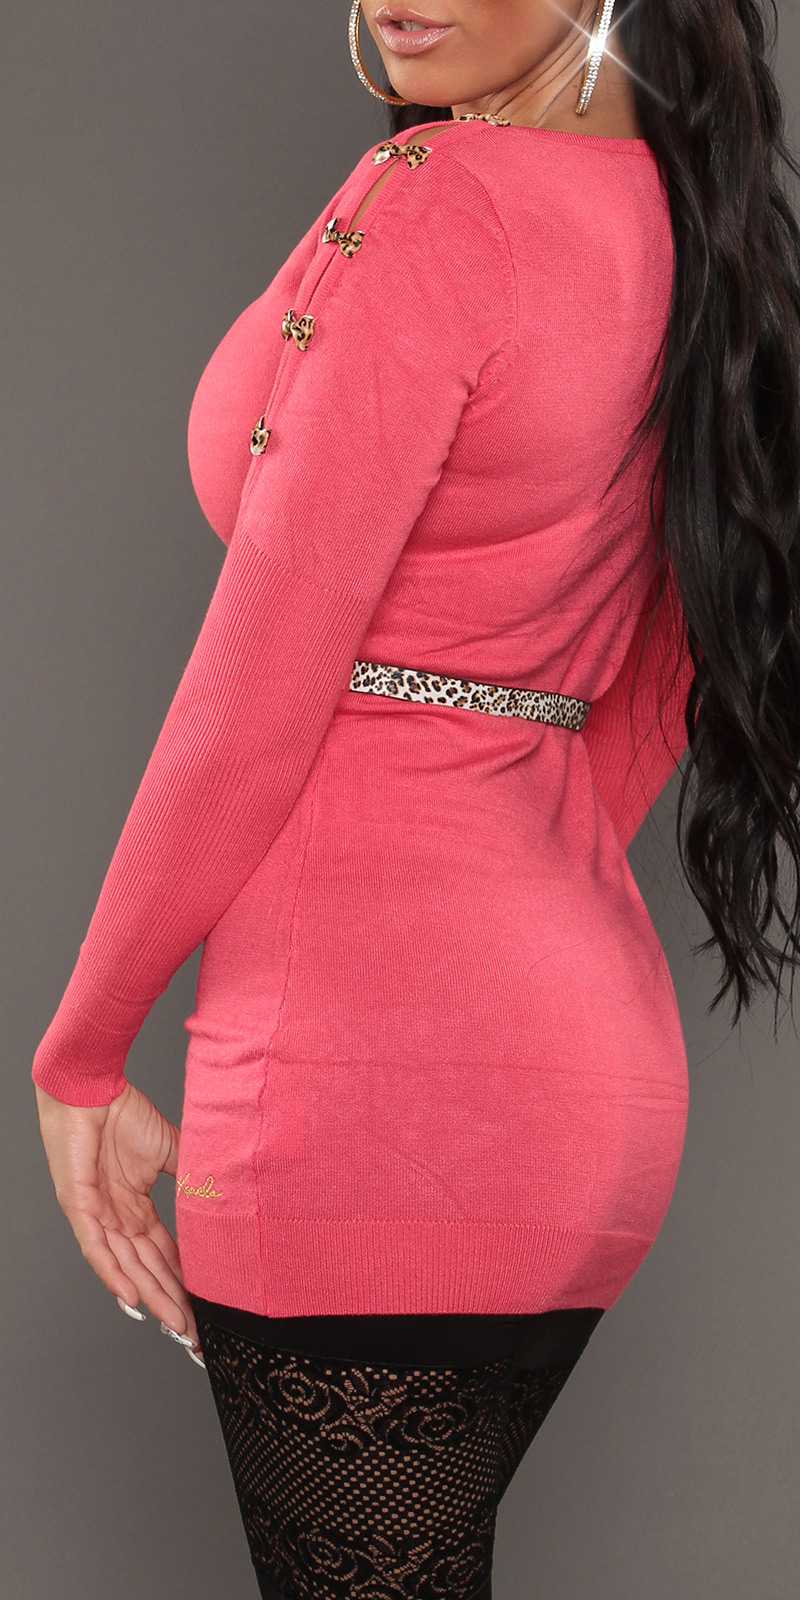 Soft Knit Jumper with Open Shoulders & Leopard Belt - Coral - Click Image to Close